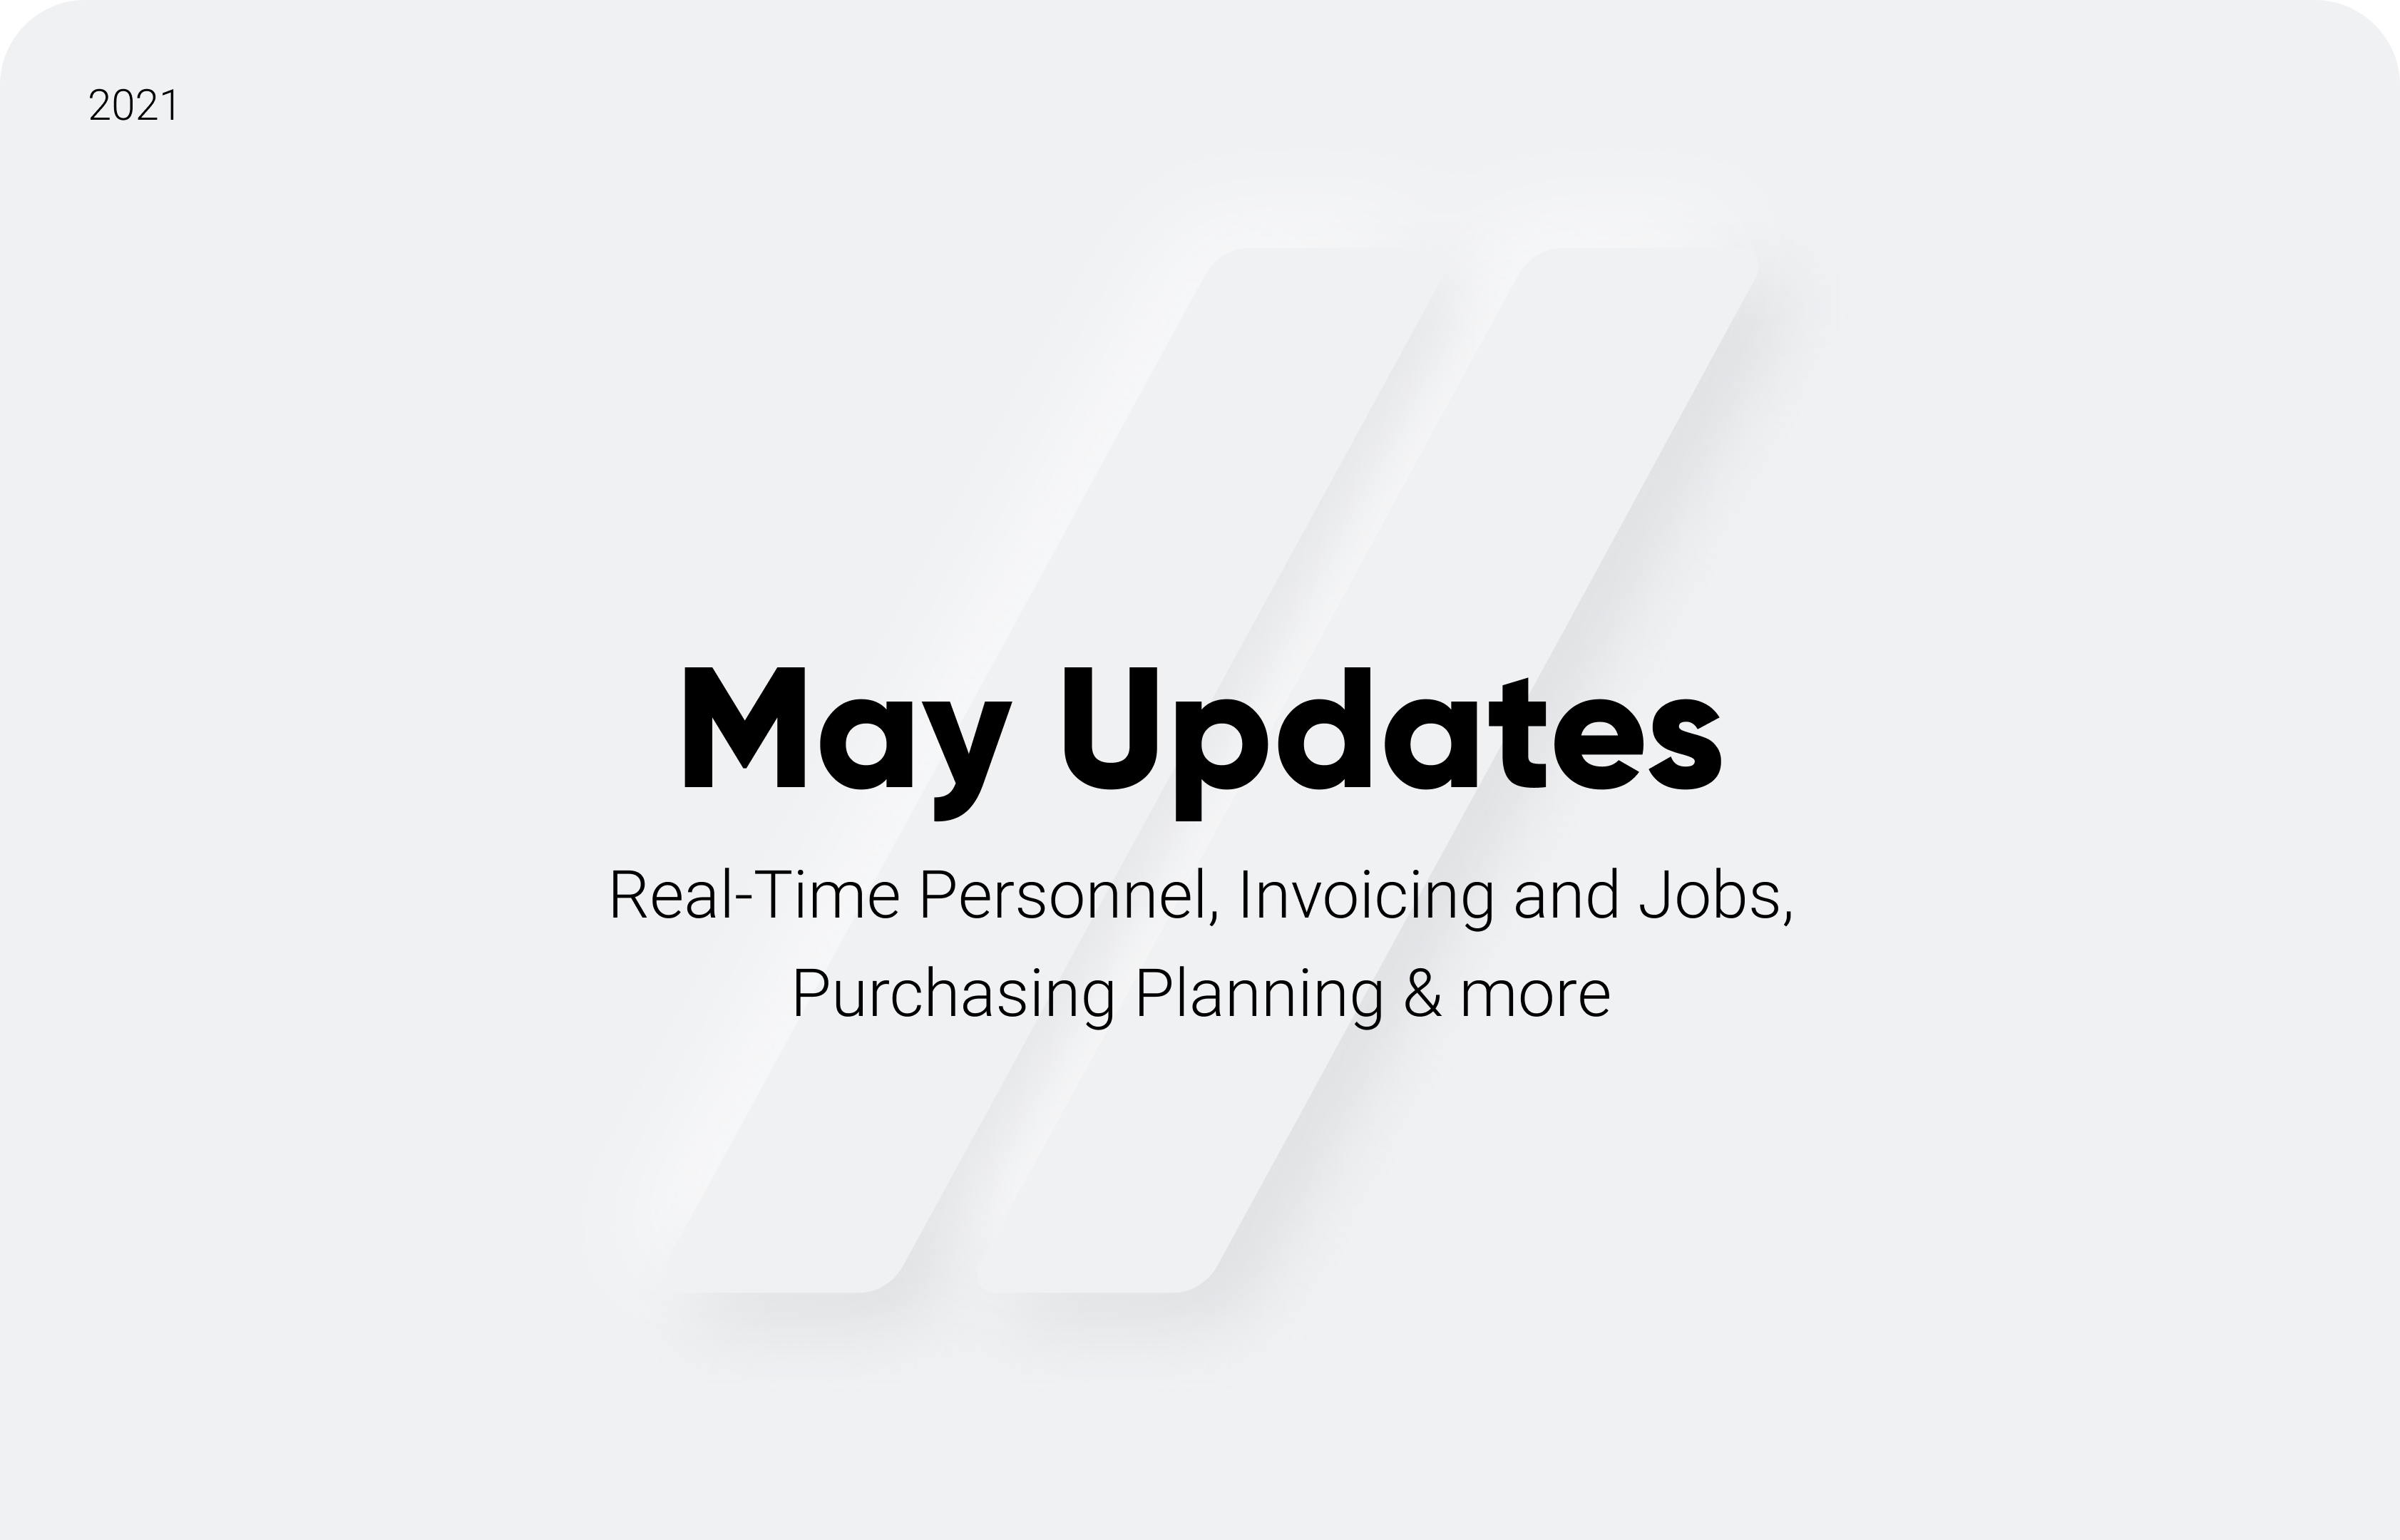 May Updates: Real-Time Personnel, Invoicing and Jobs, Purchasing Planning & more